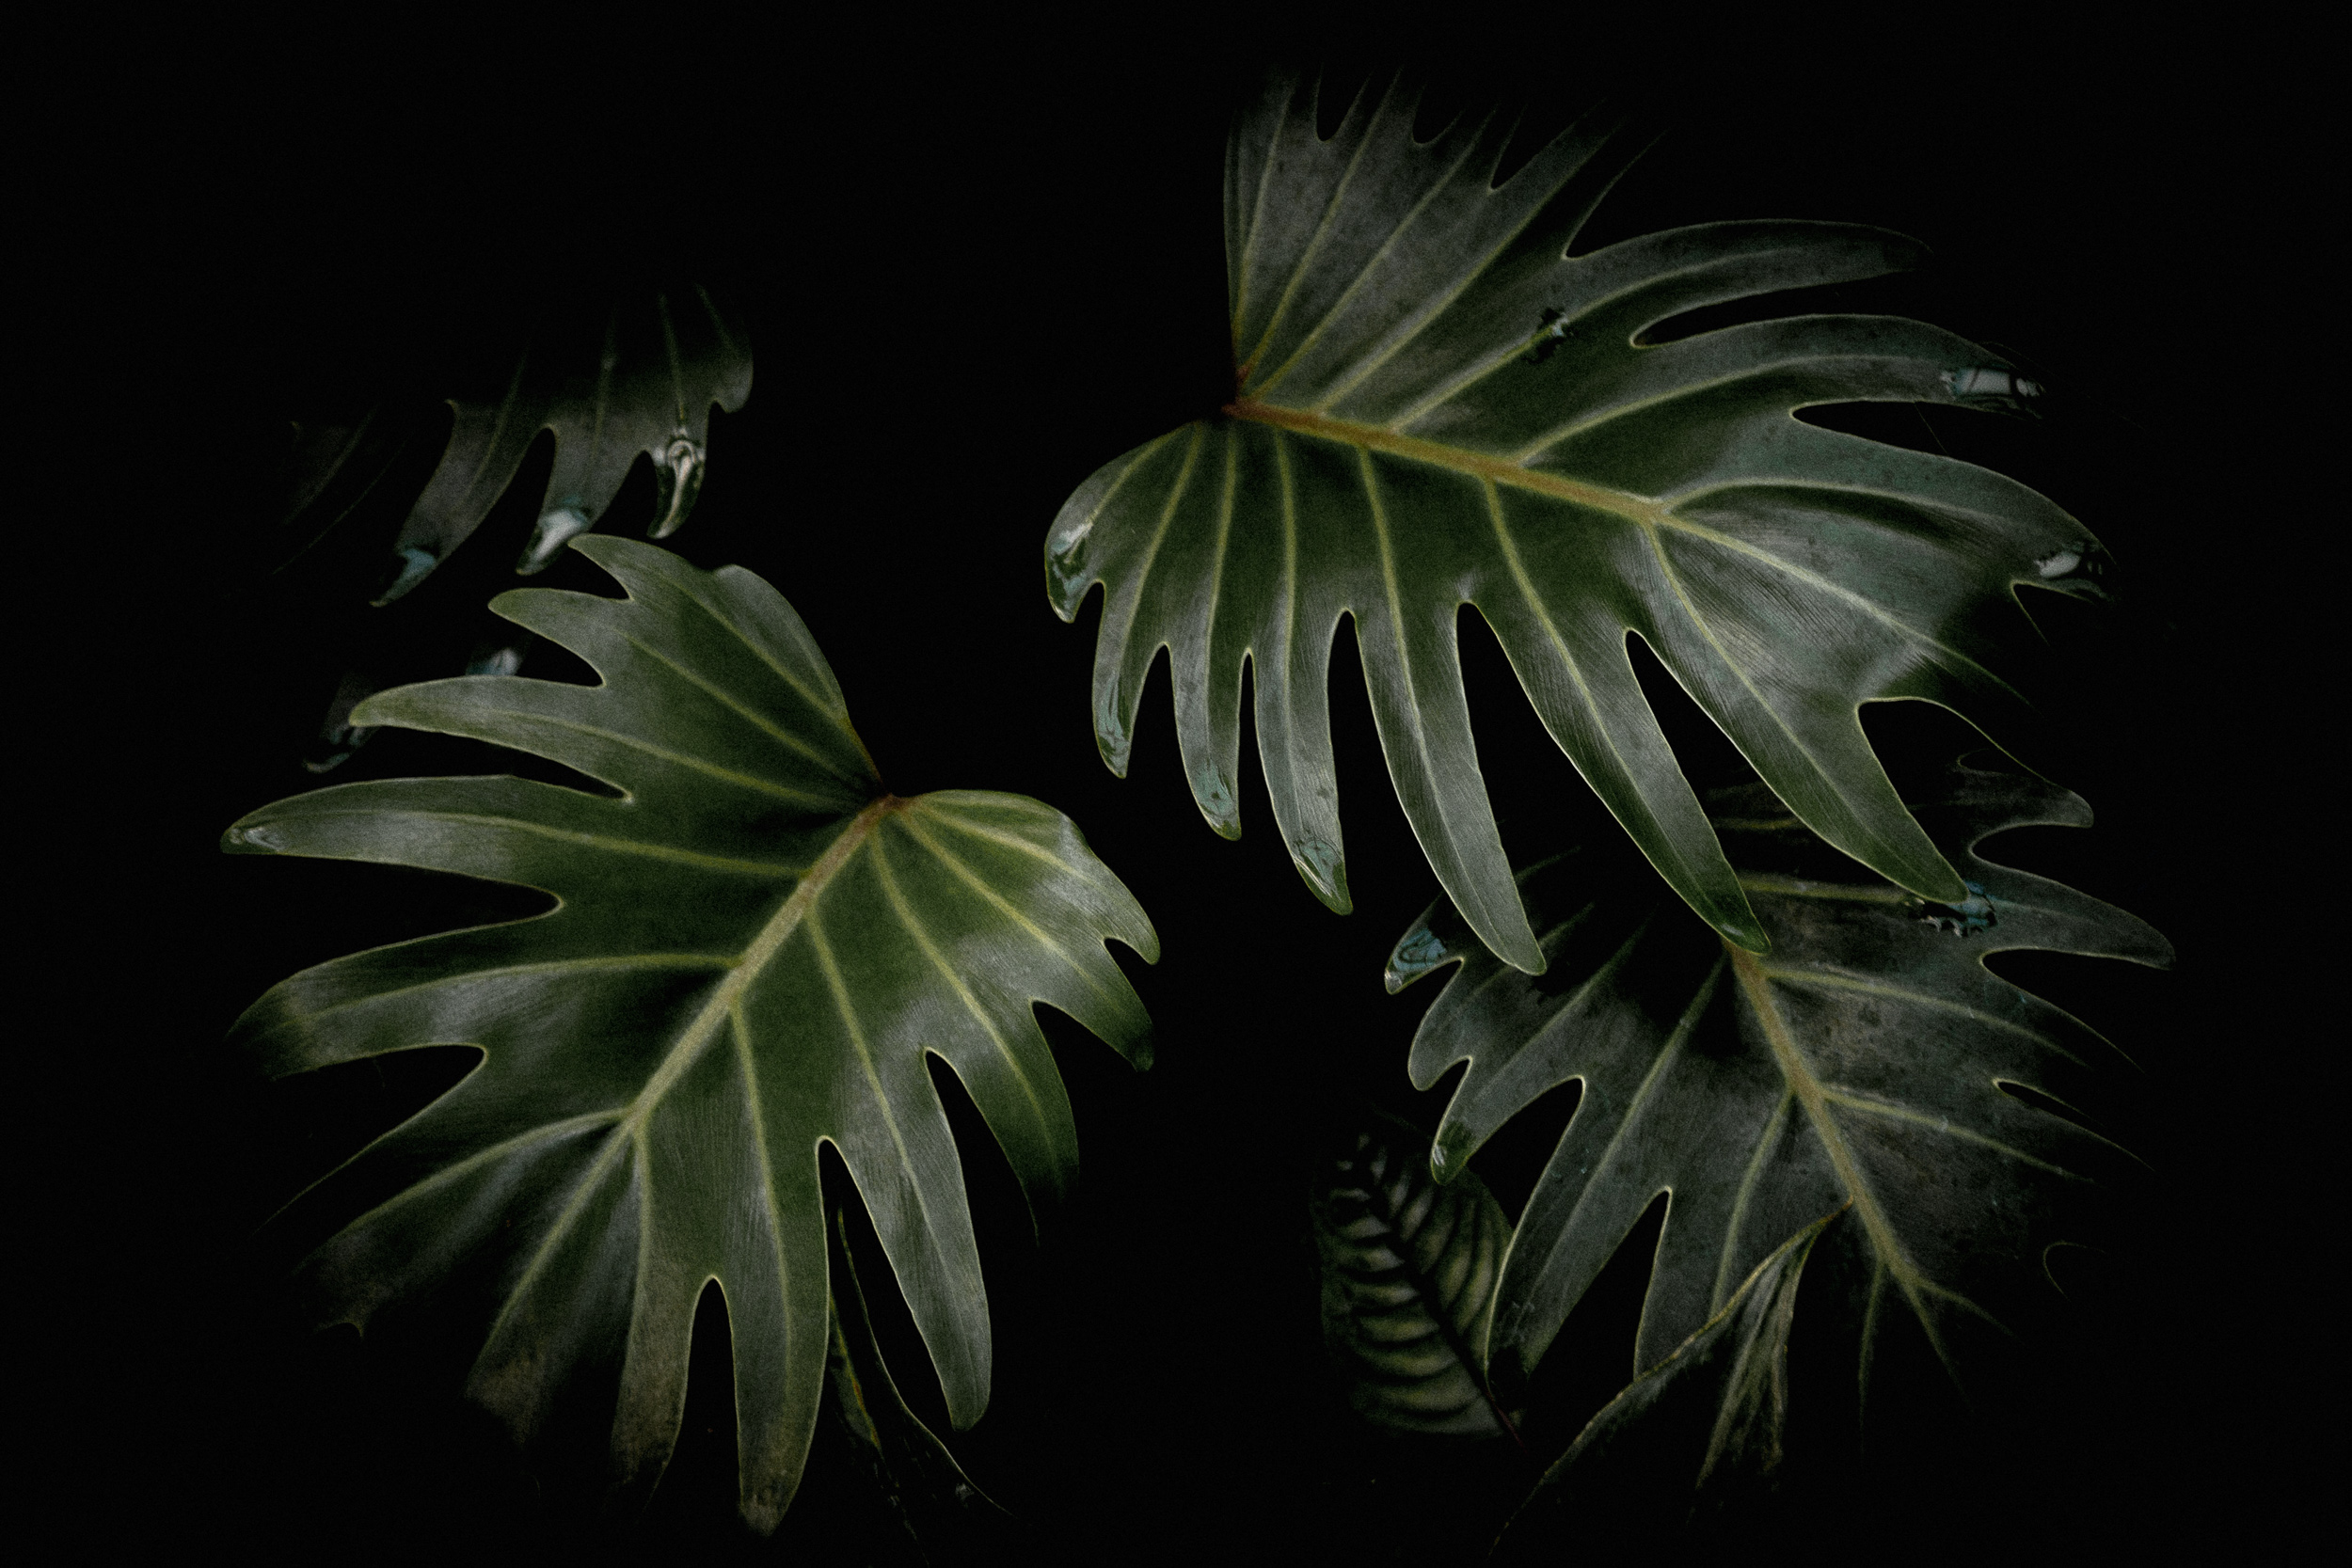 07-monstera-leaves-moody-kew-garden-anna-elina-lahti-photography.jpg